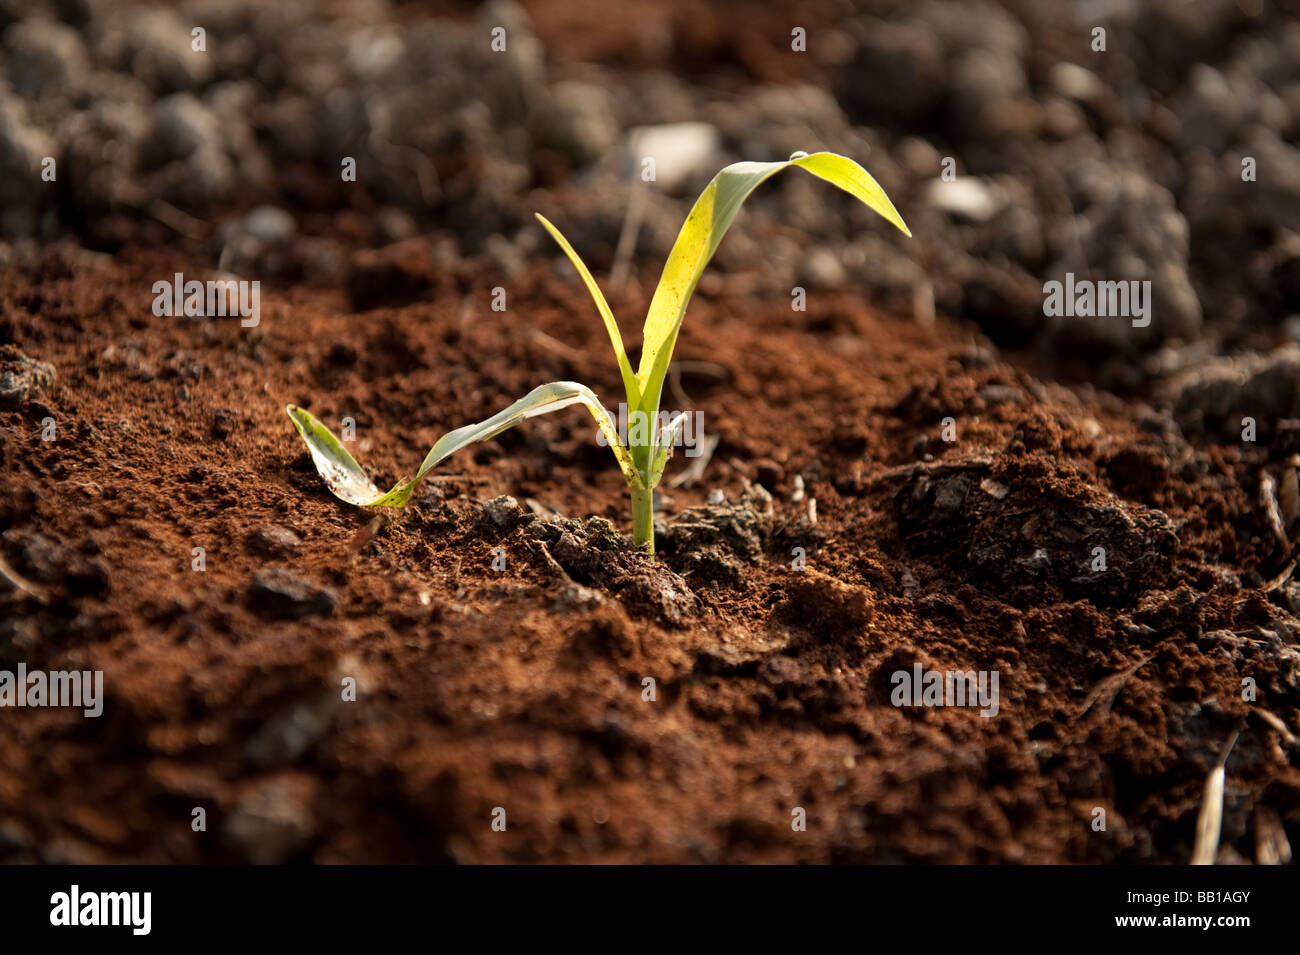 Coffee grounds spread around Young shoots of Corn plants to protect ...